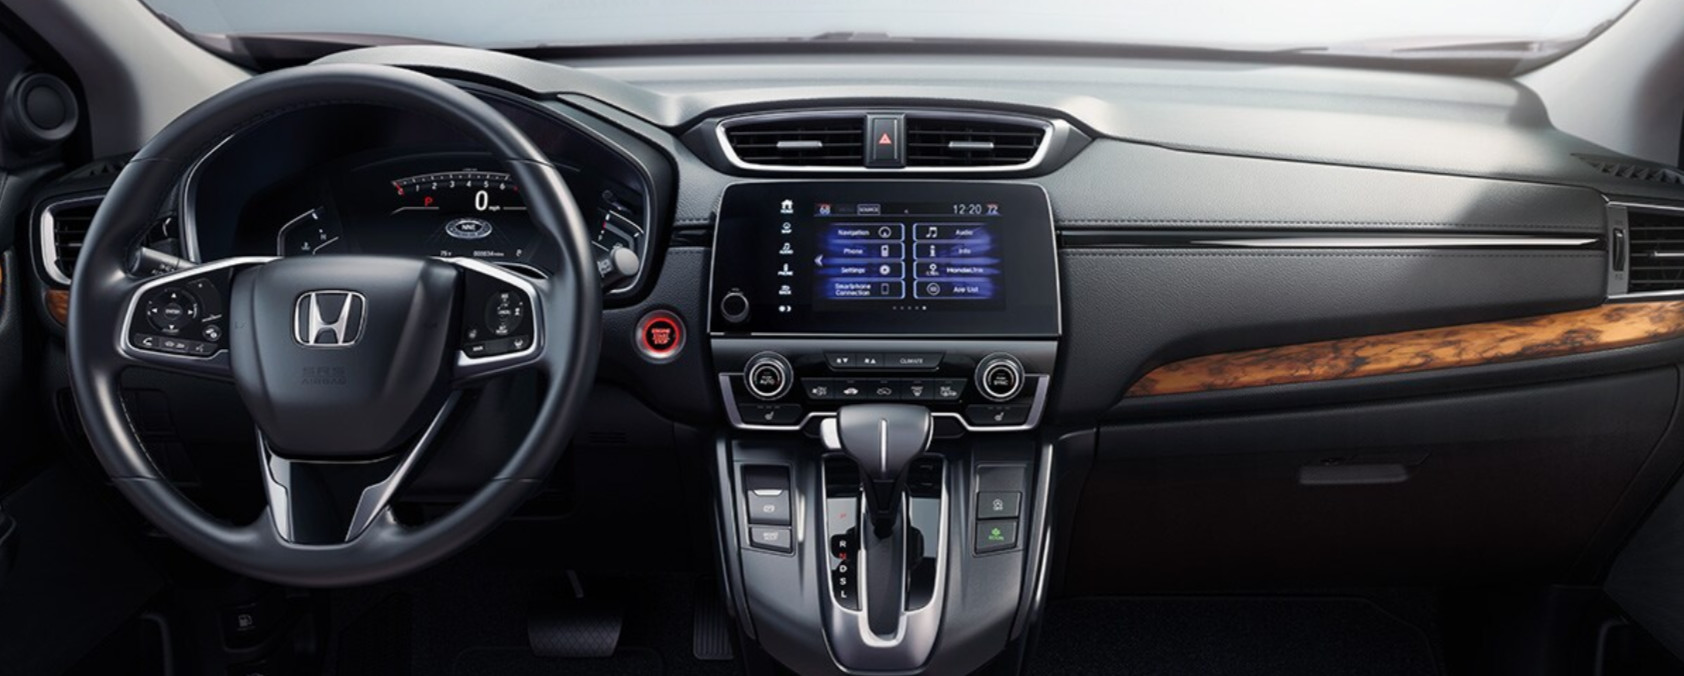 Interior of the 2020 Honda CR-V